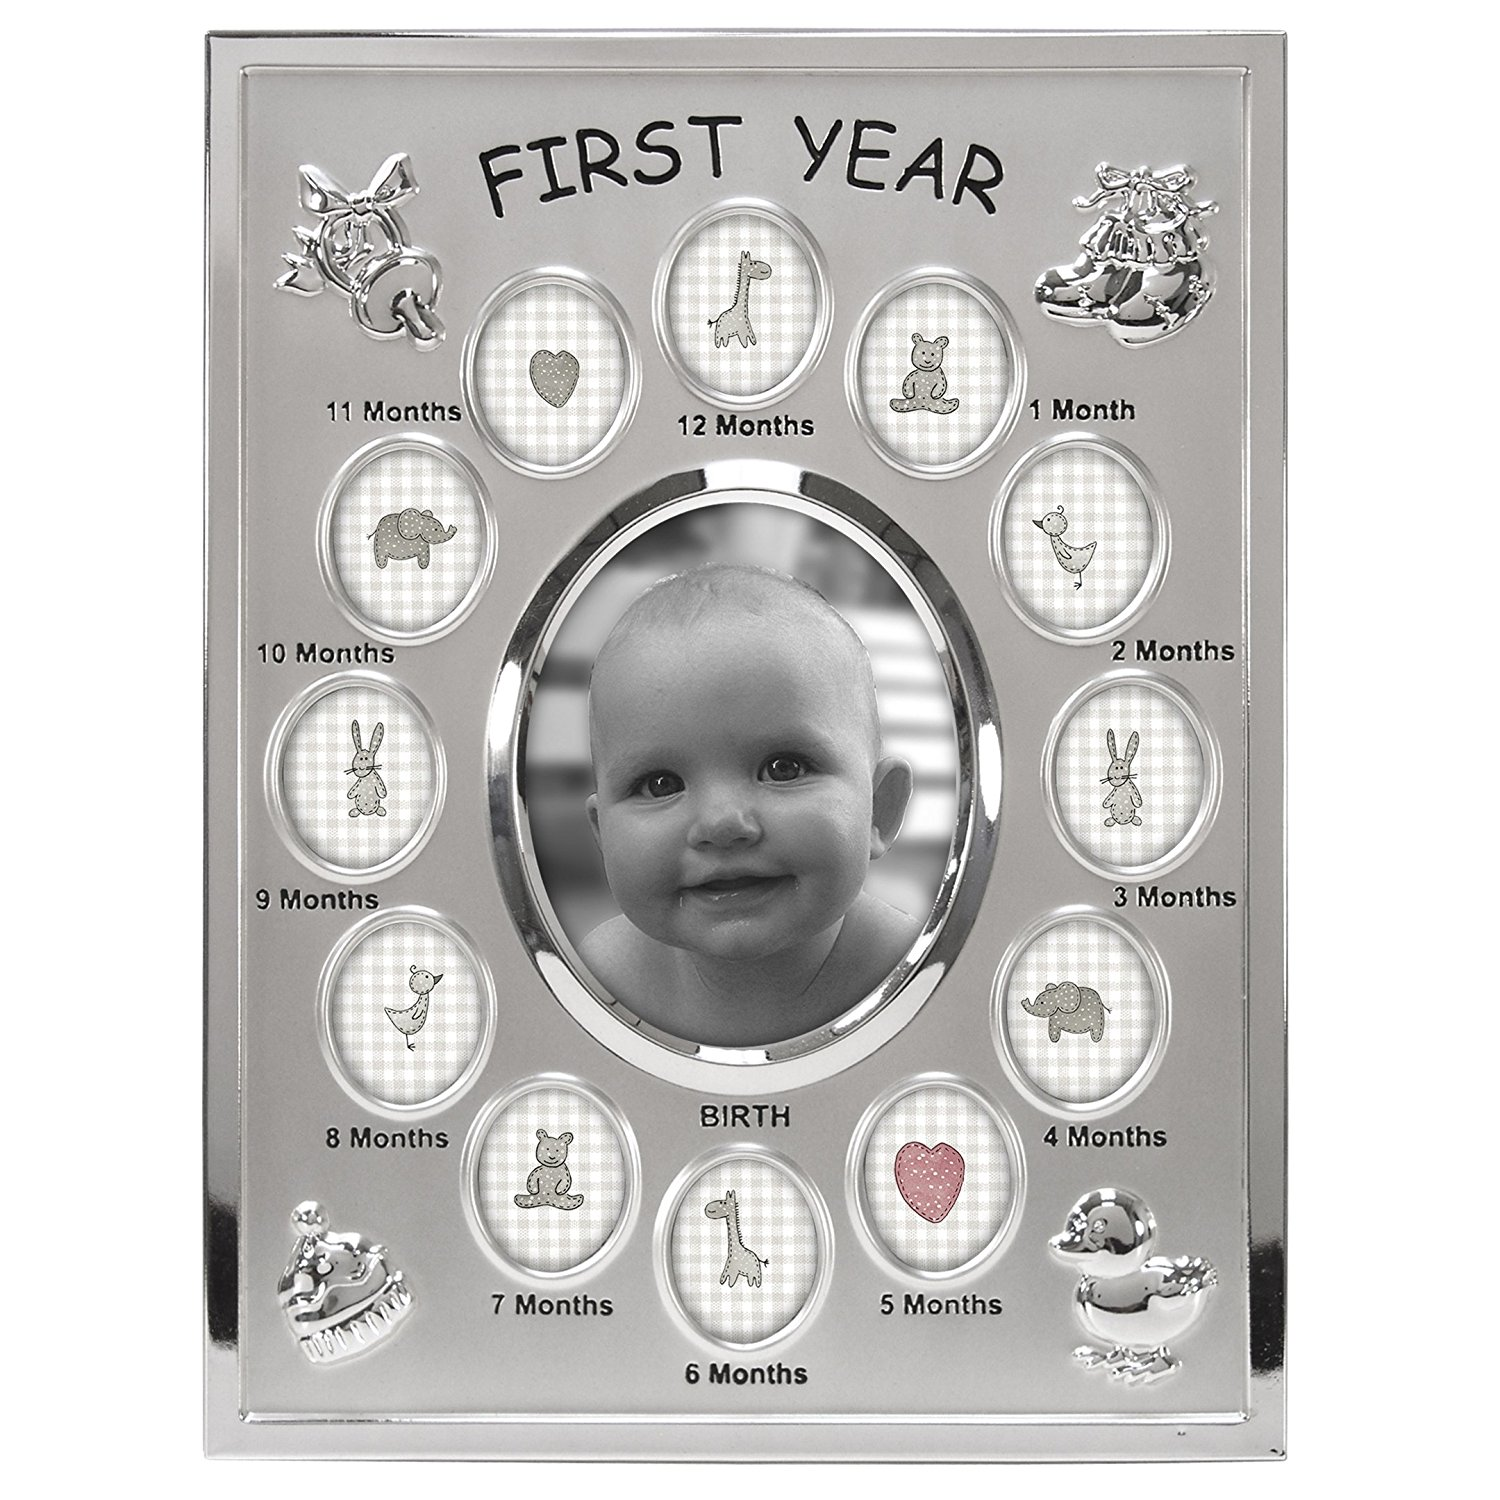 1 MONTH to 1 YEAR BABY FIRST YEAR PHOTO FRAME COLLAGE ROCKING HORSE DESIGN